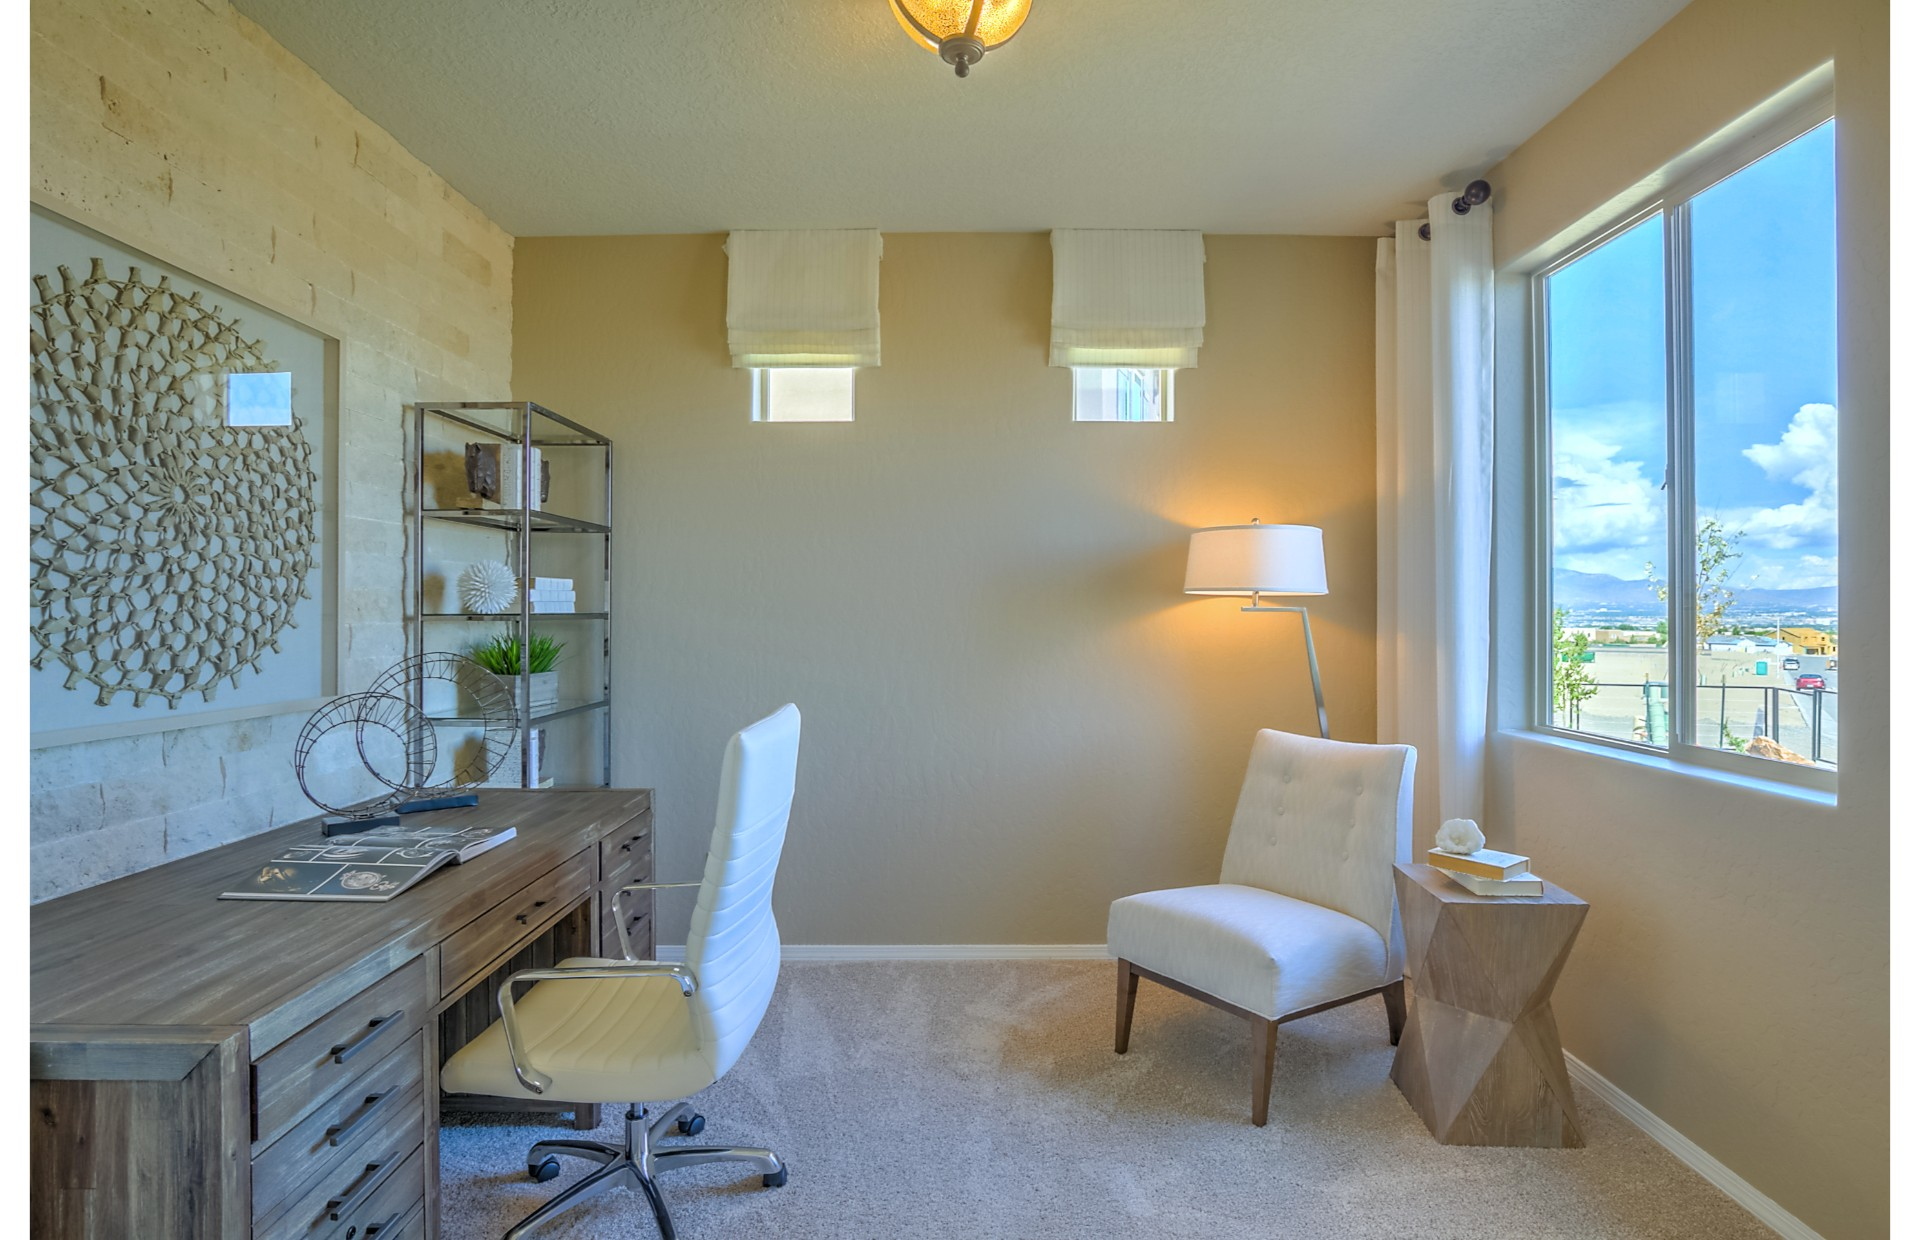 The Ridge at Stormcloud by Pulte Homes image 0